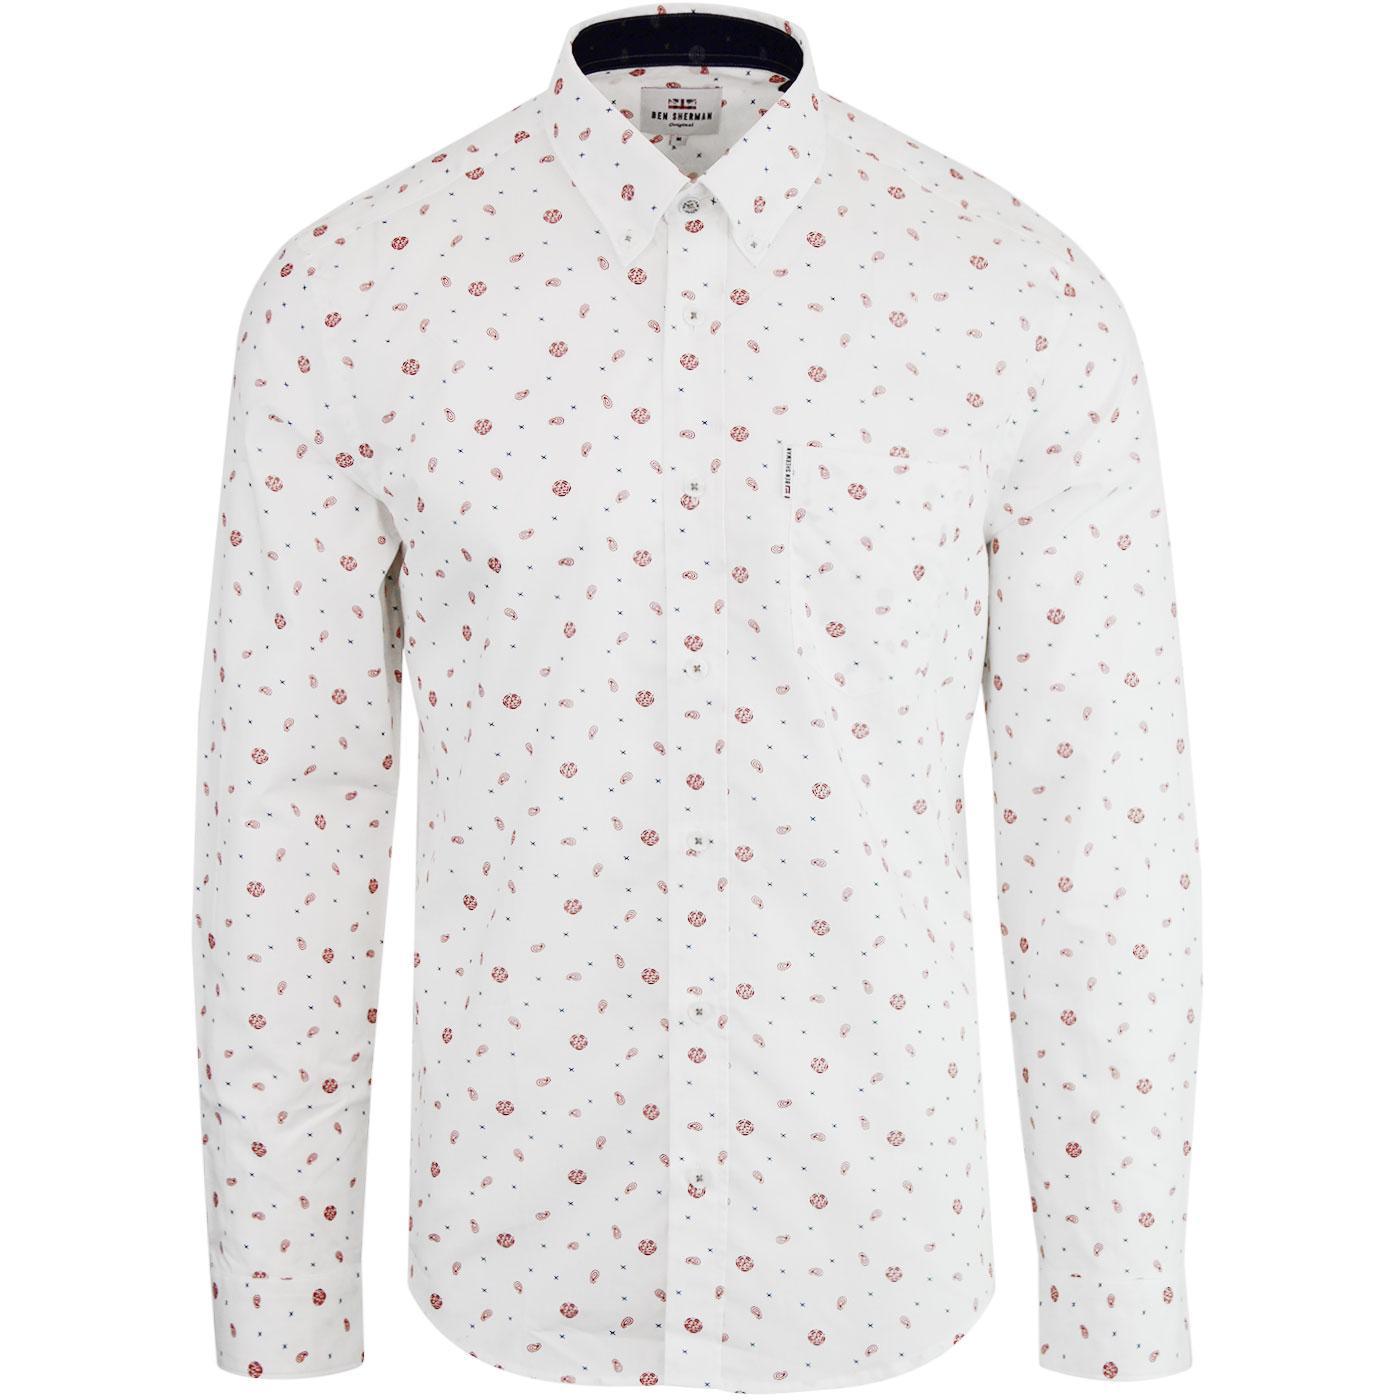 BEN SHERMAN Northern Soul Rose Scatter Mod Shirt